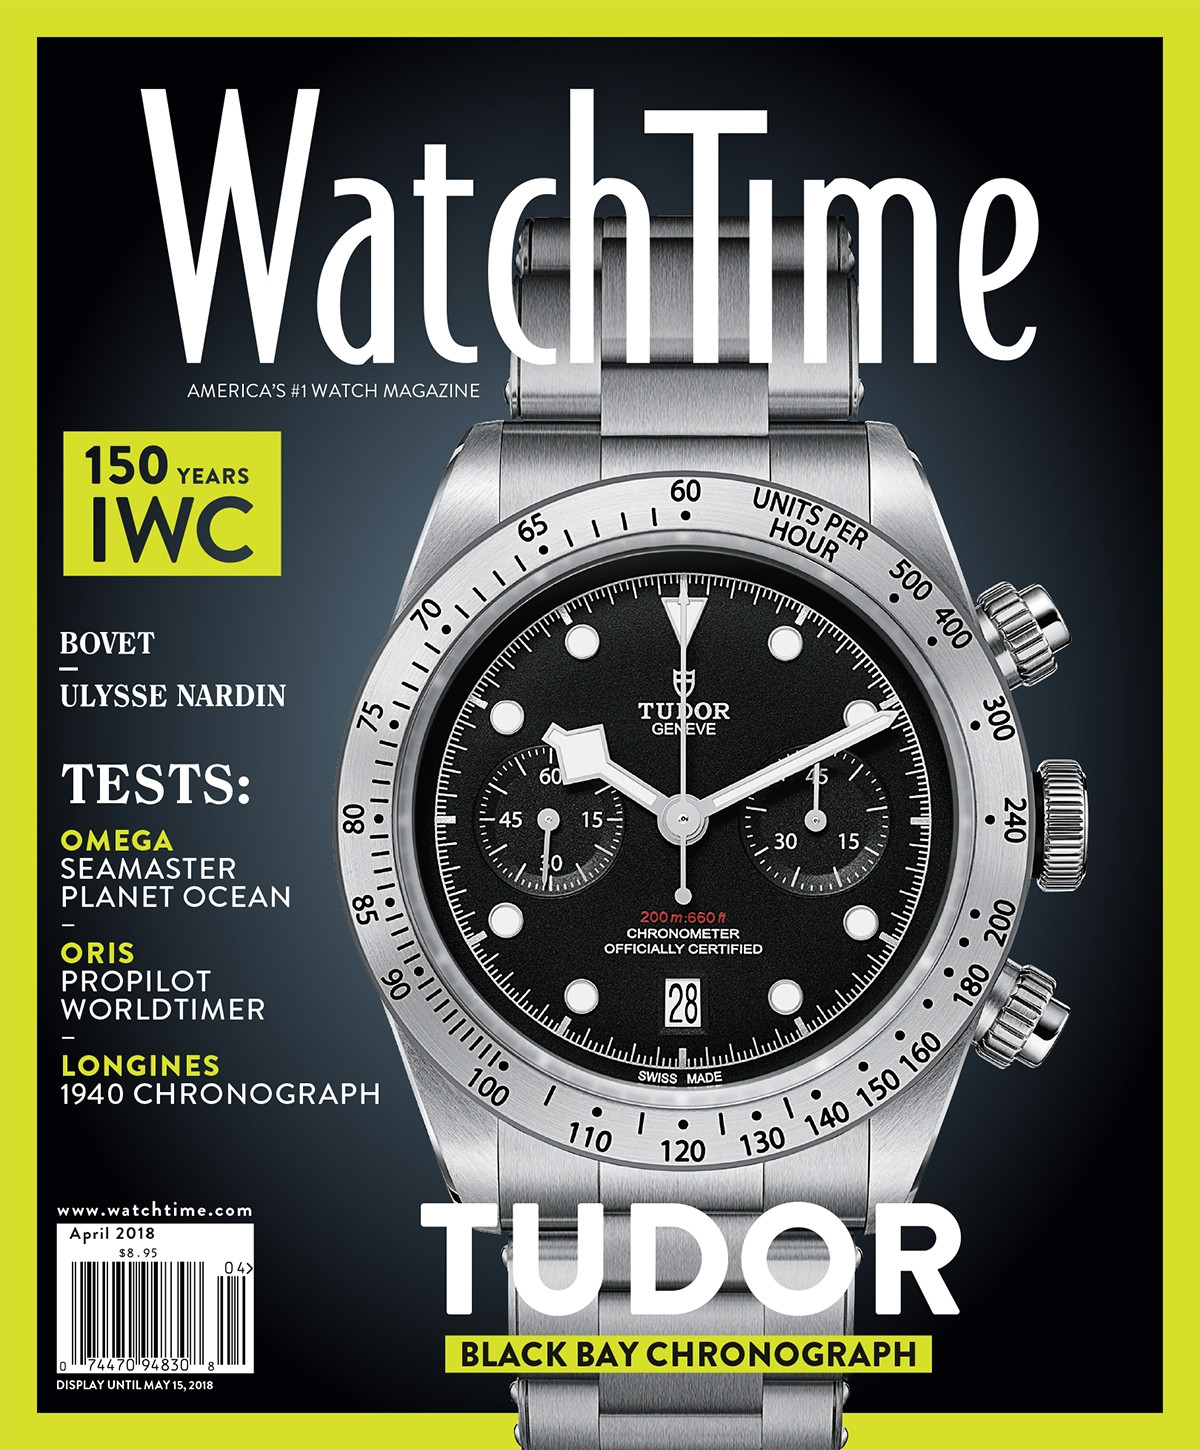 WatchTime April 2018: 150 Years IWC, Omega Seamaster Planet Ocean, Oris ProPilot Worldtimer, Longines 1940 Chronograph, Tudor Black Bay Chronograph